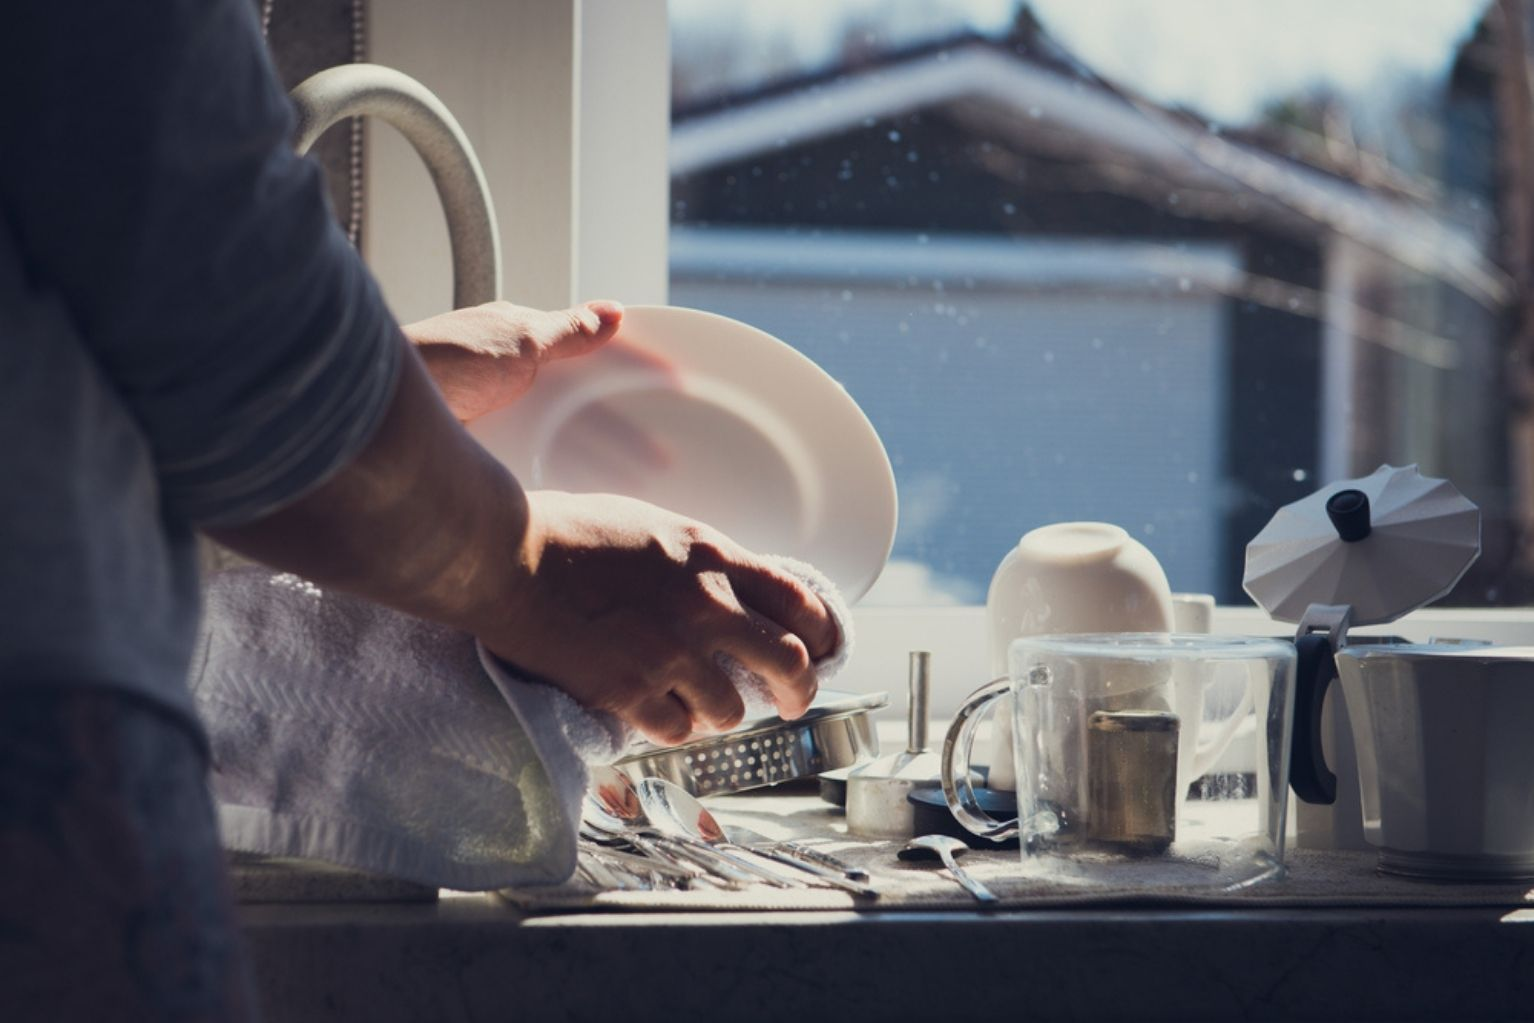 Person cleaning a white plate in their kitchen sink with other clean dishes on the counter